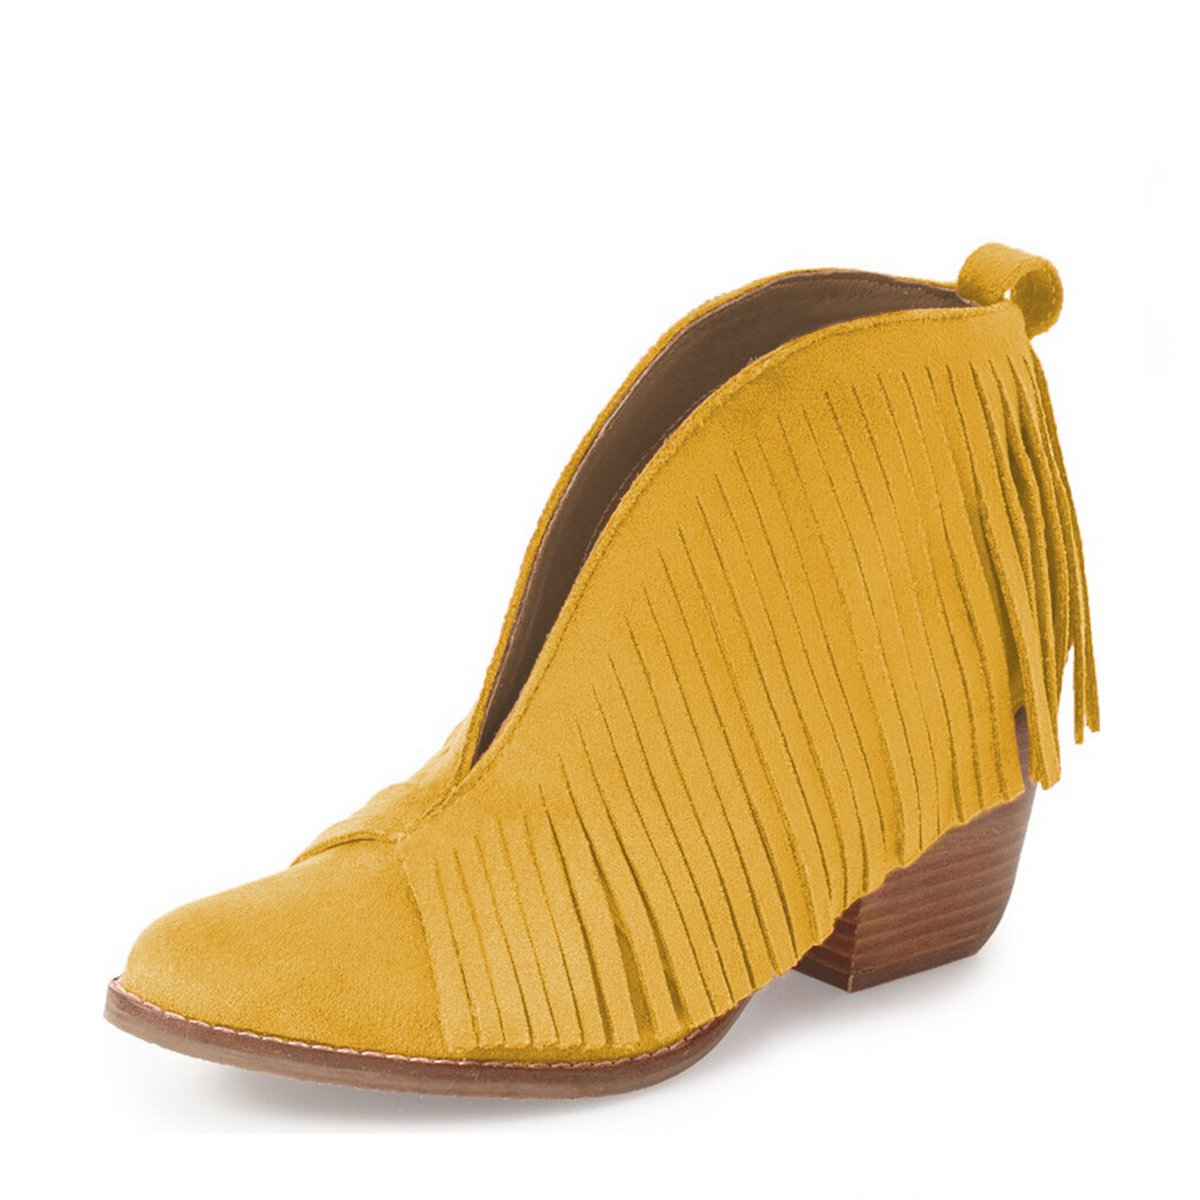 YDN Western Ankle High Boots with Tassels Round Toe Block Heel Suede Retro Booties B01KC29T1Q 8 B(M) US|Yellow